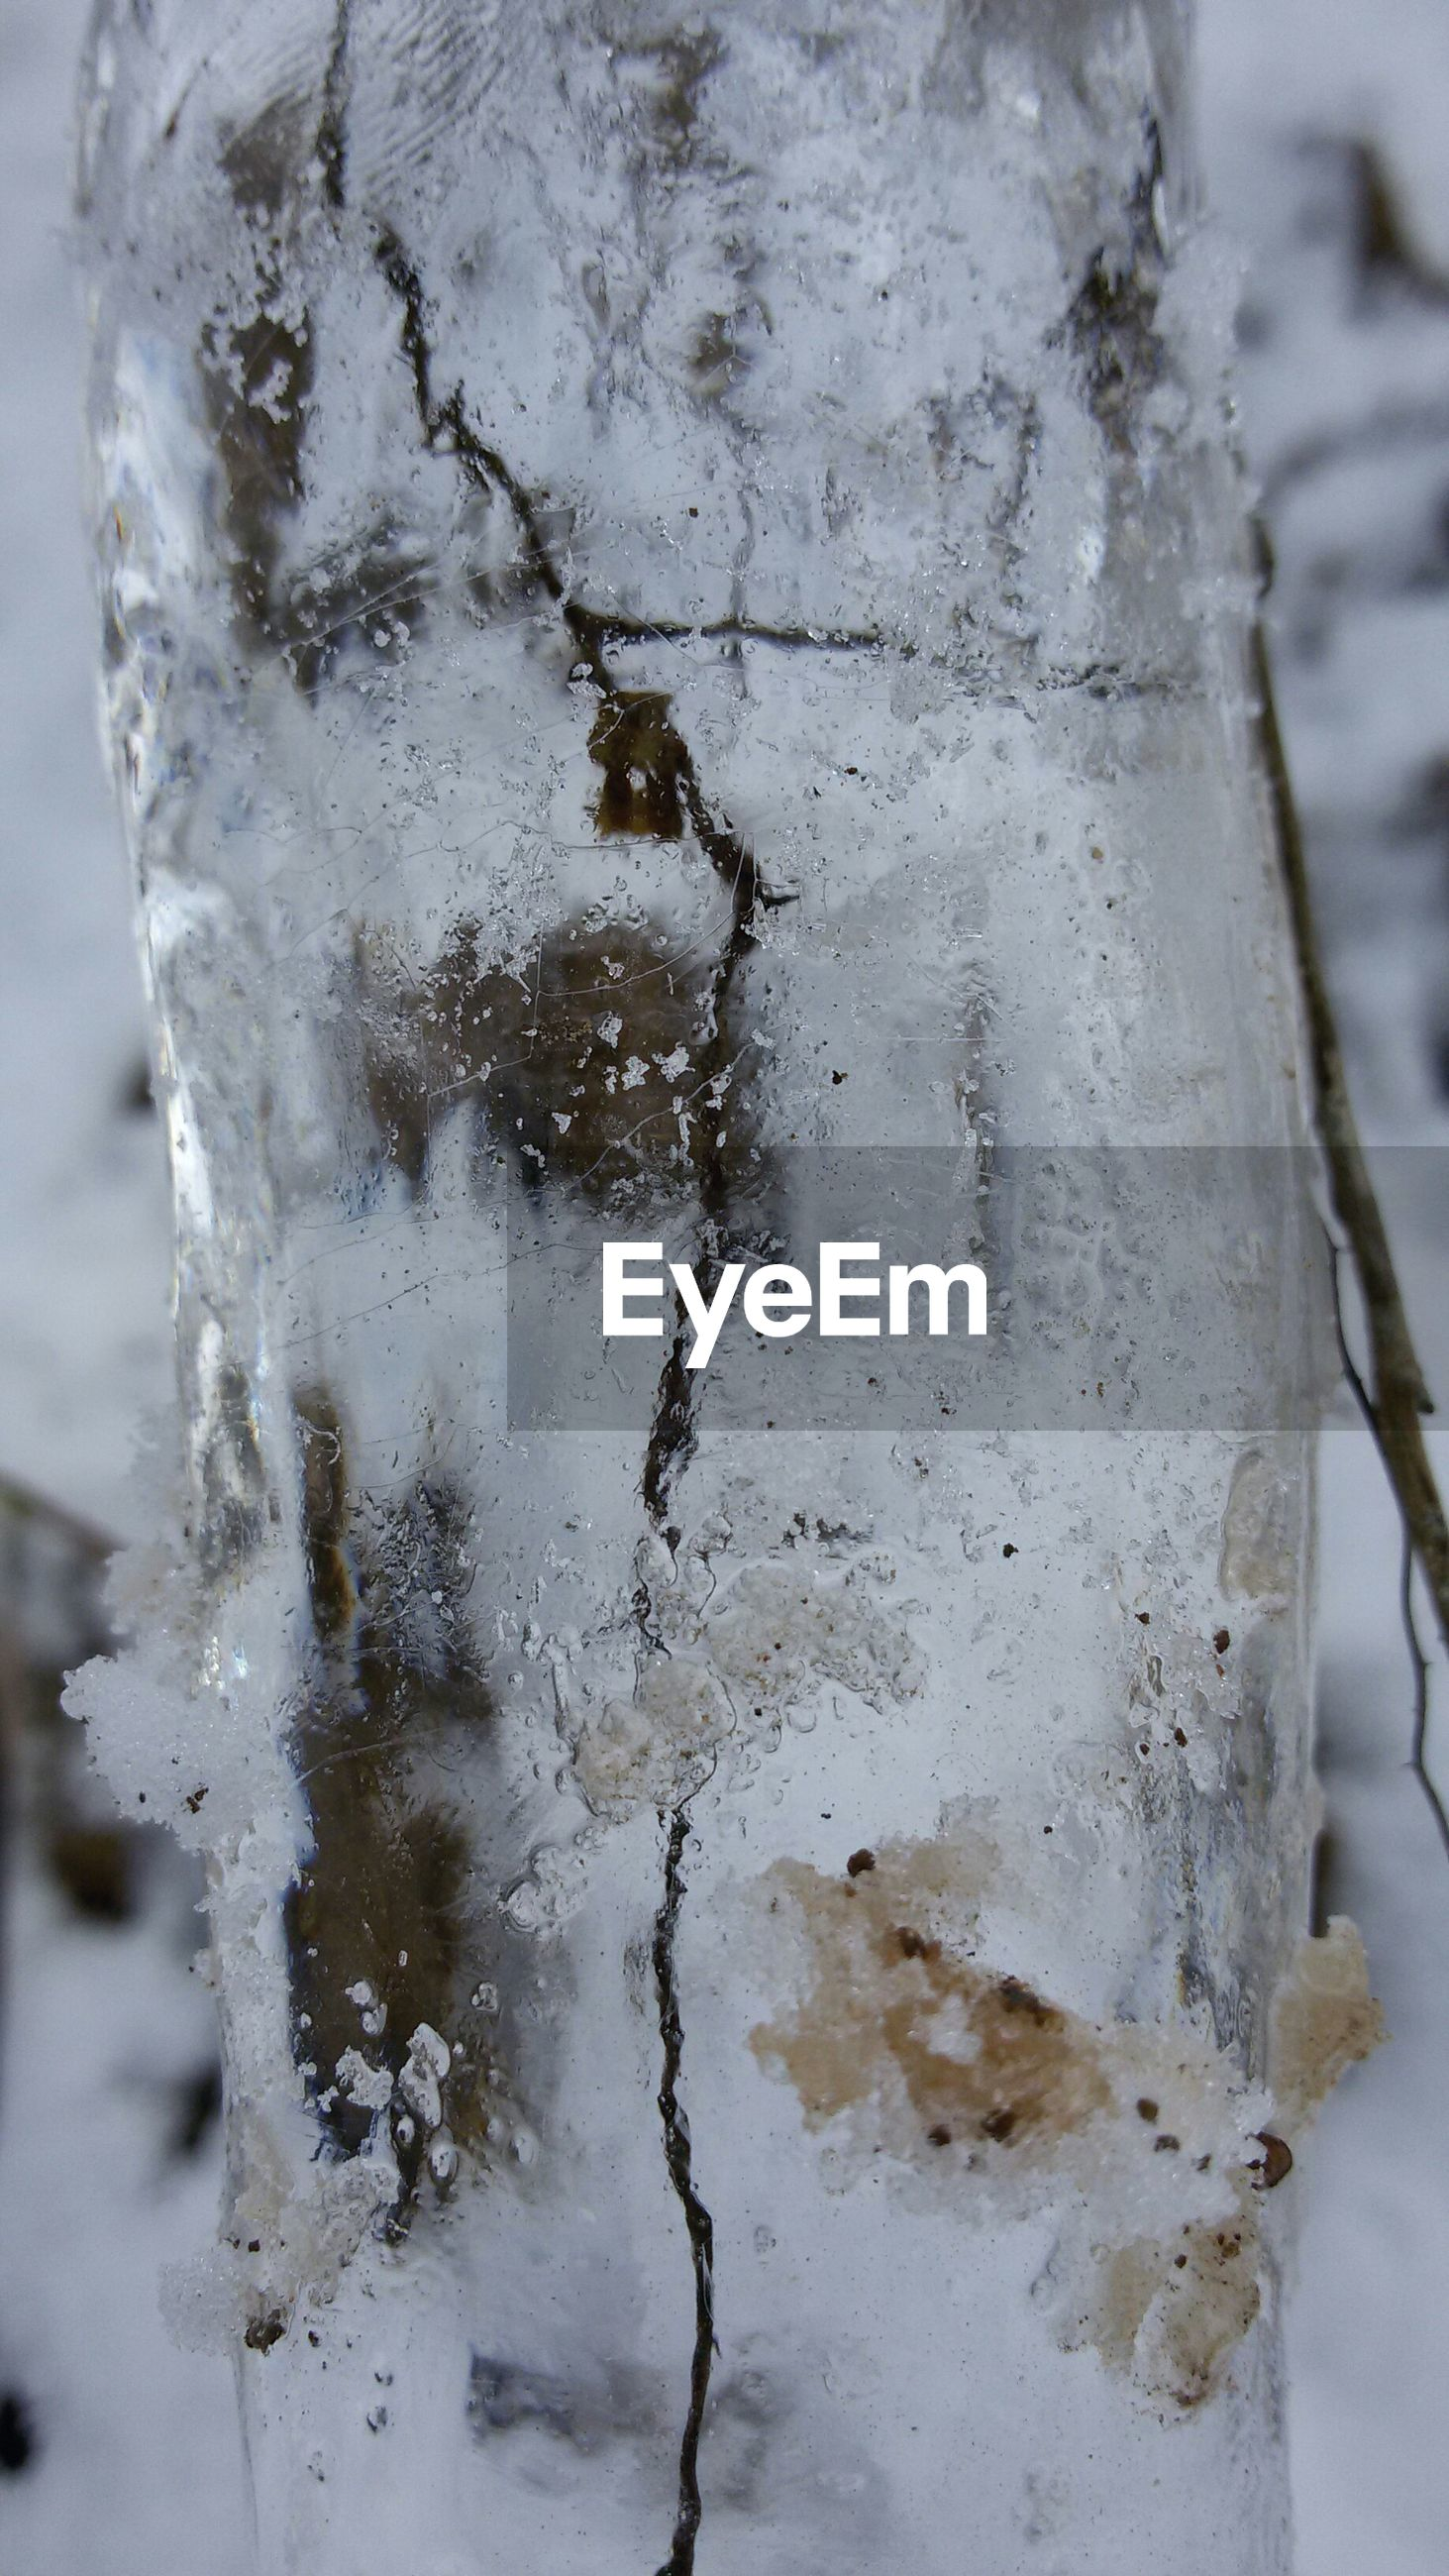 close-up, cold temperature, ice, winter, frozen, water, focus on foreground, snow, nature, weather, drop, wet, season, day, selective focus, no people, outdoors, textured, transparent, fragility